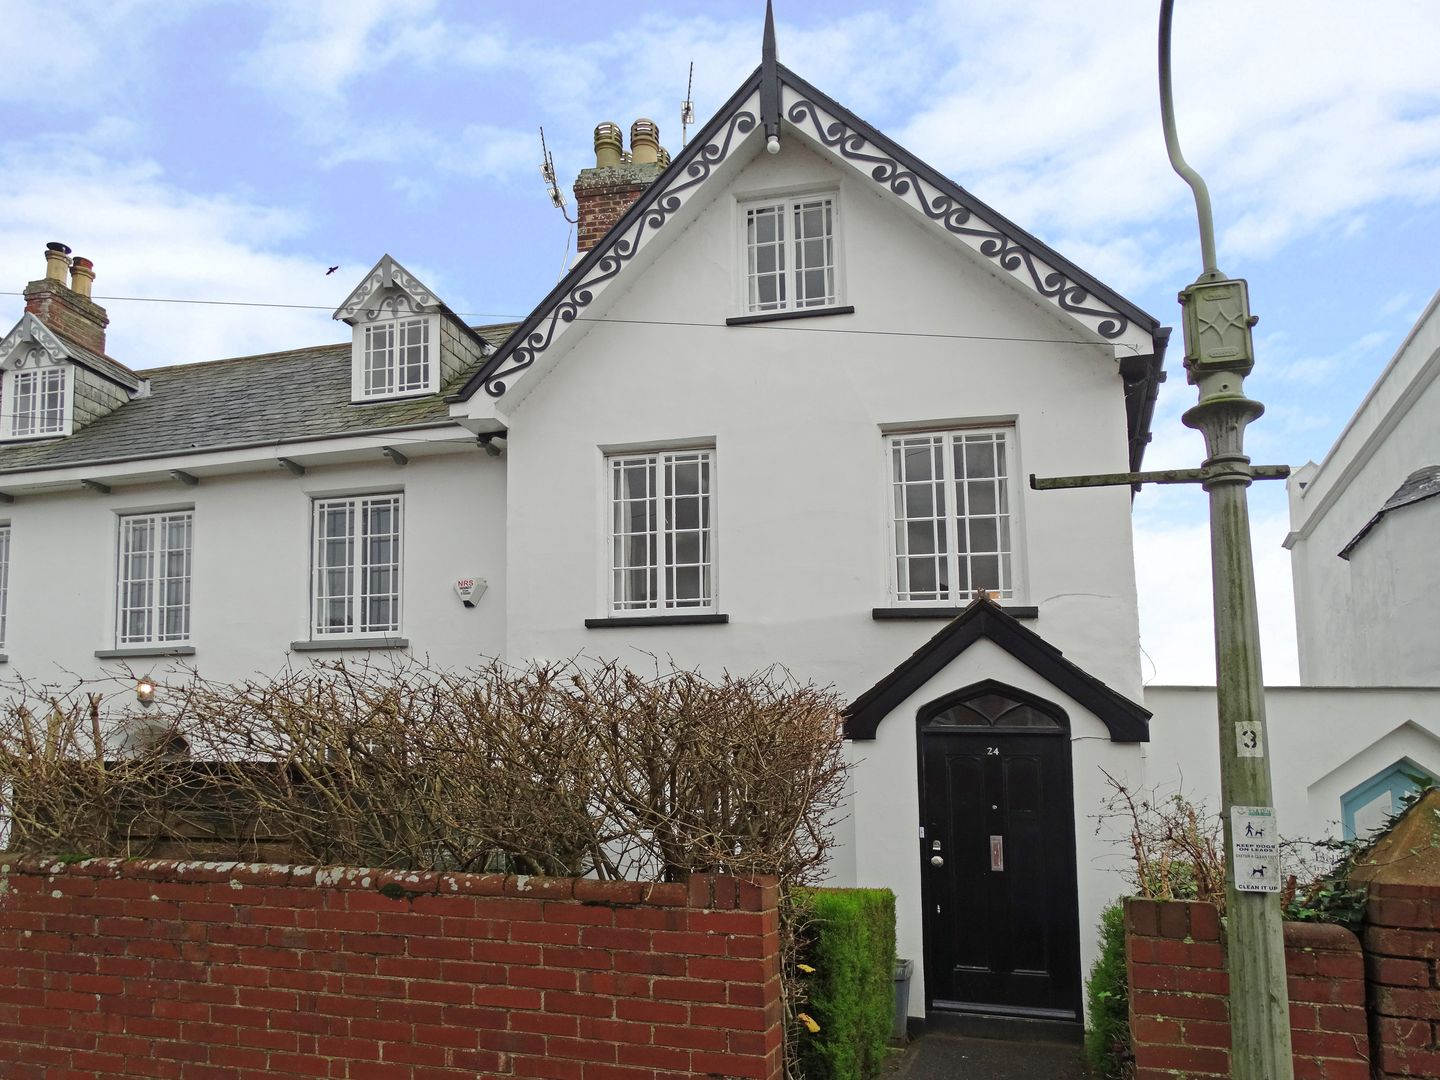 Holiday Cottage Reviews for 24 Victoria Road - Self Catering in Topsham, Devon